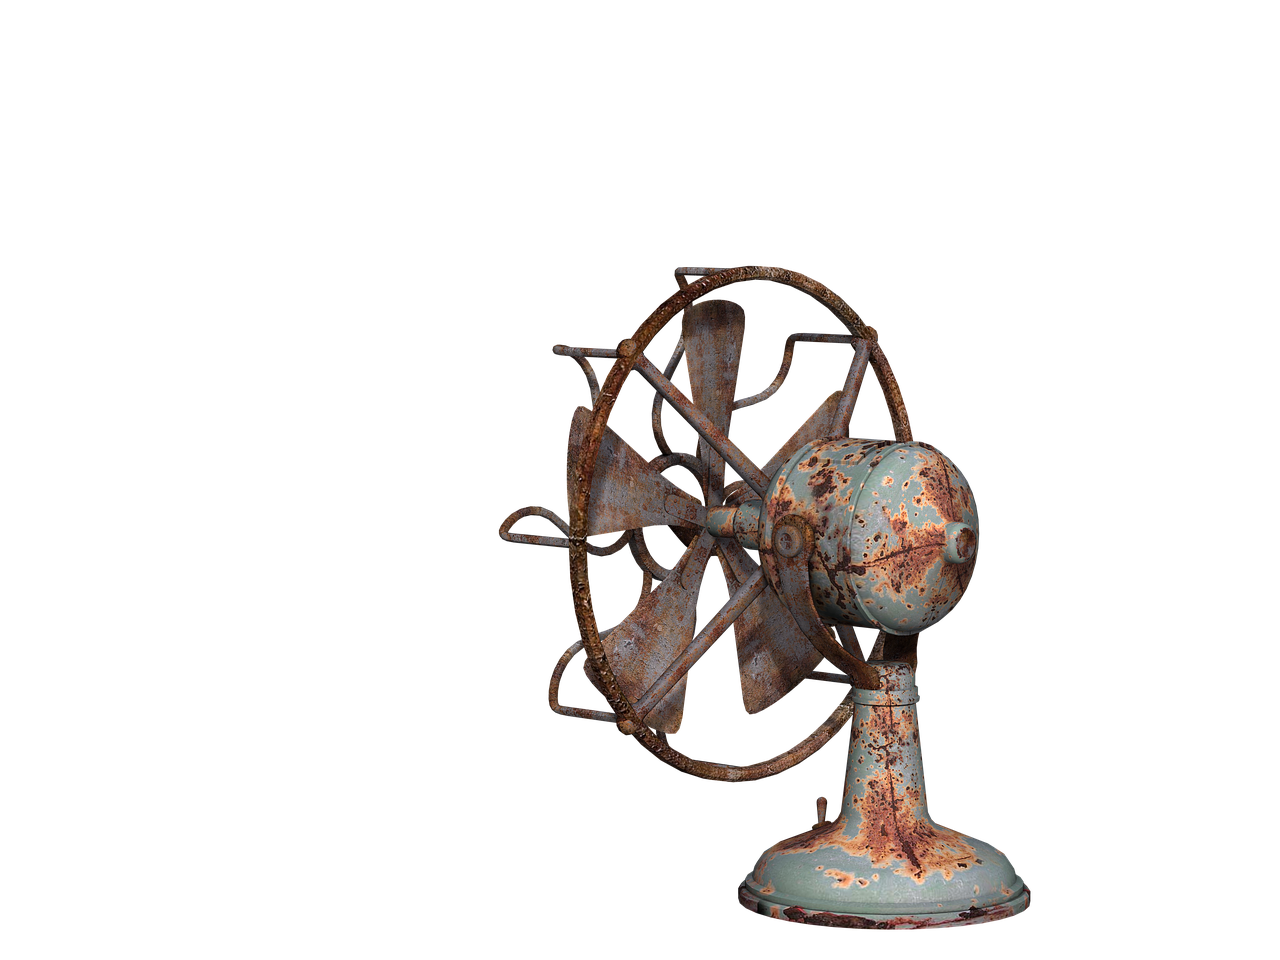 Fan Steamunk Old Rusted